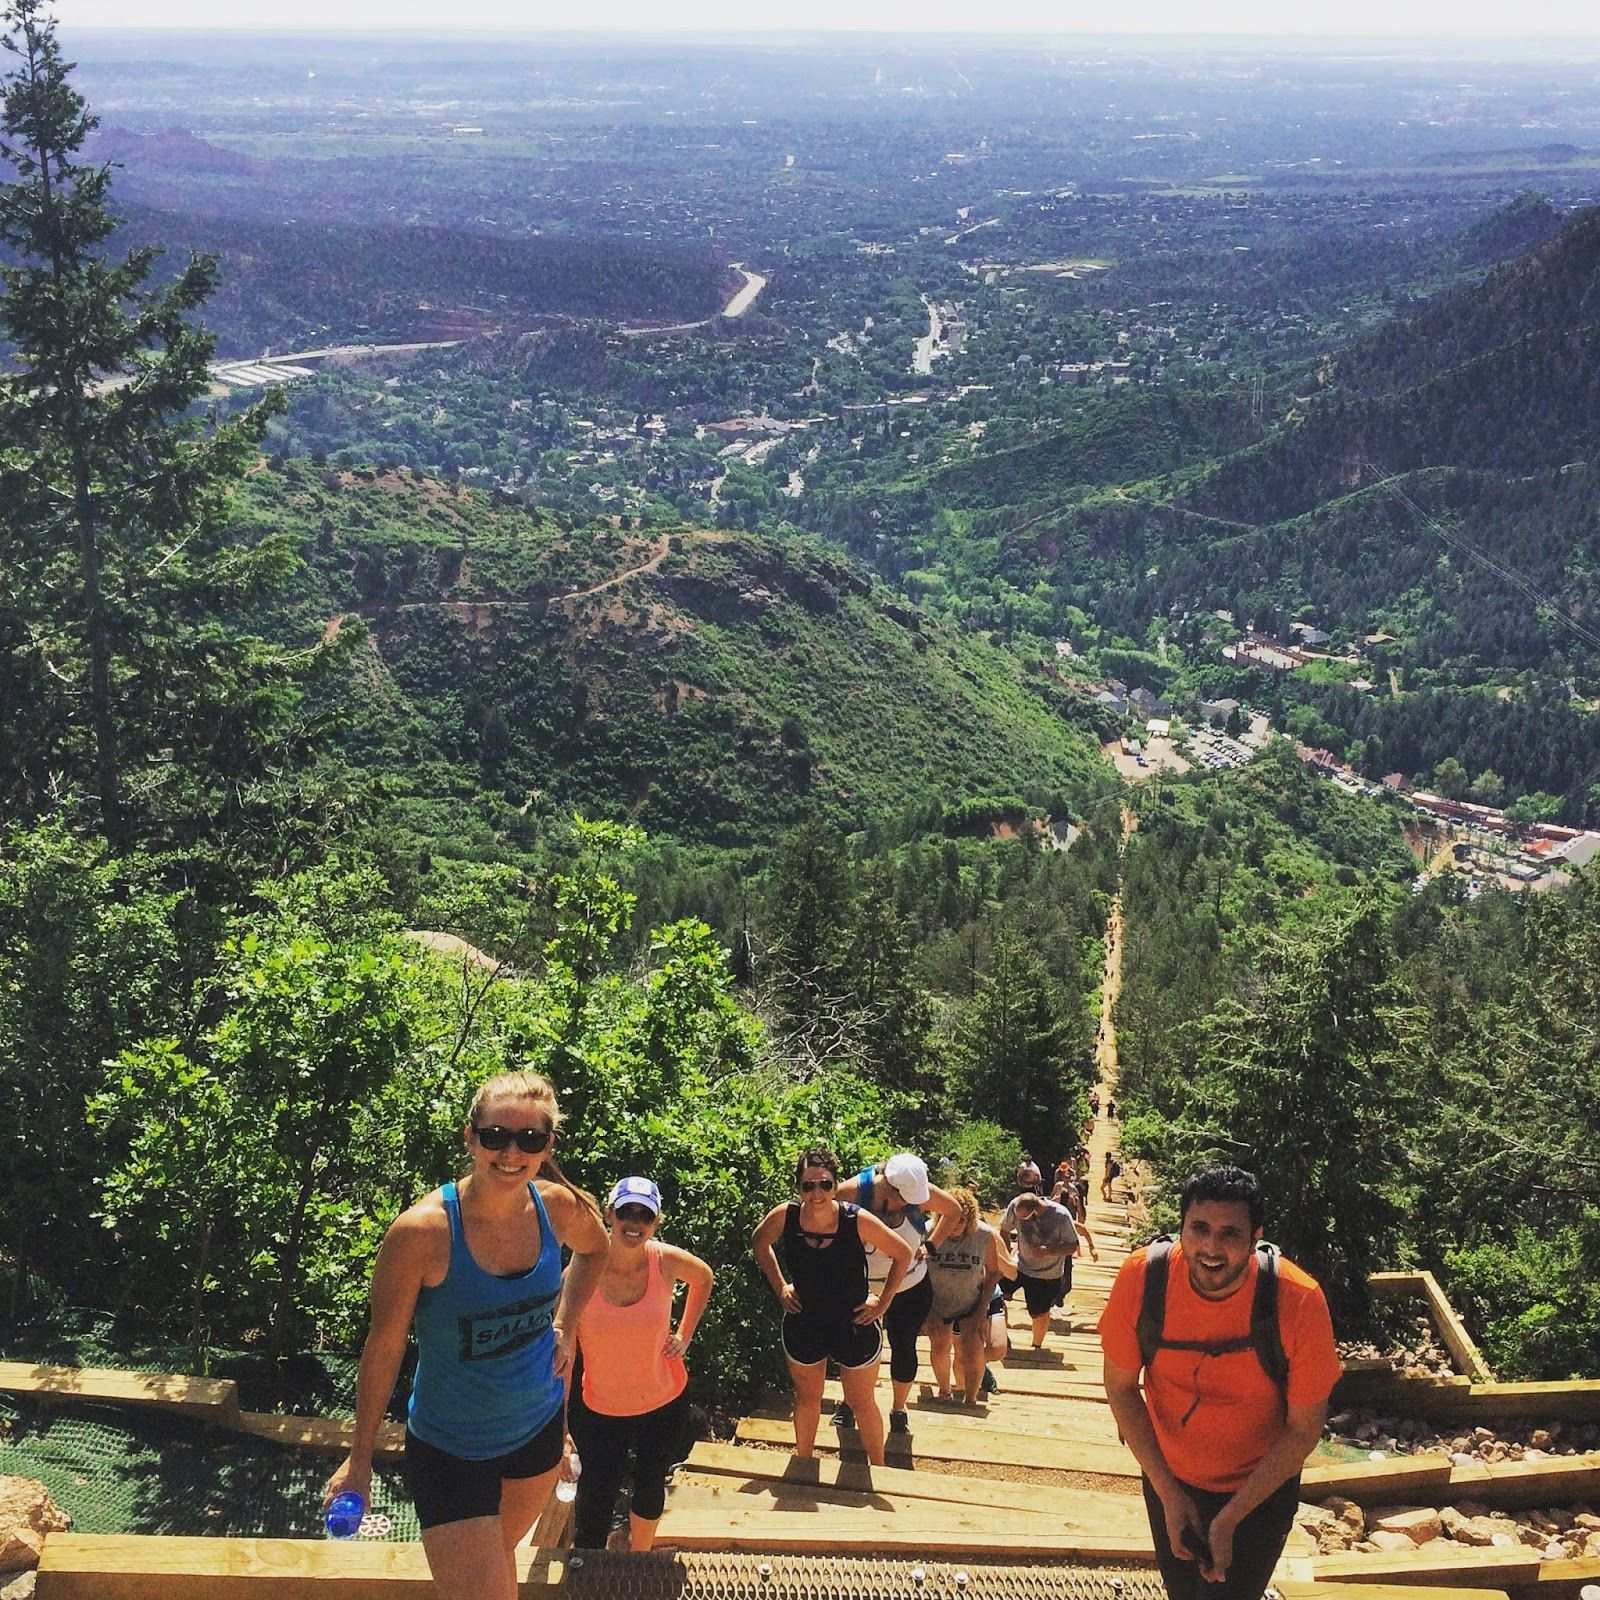 A Long Mile - Manitou Incline #manitousprings